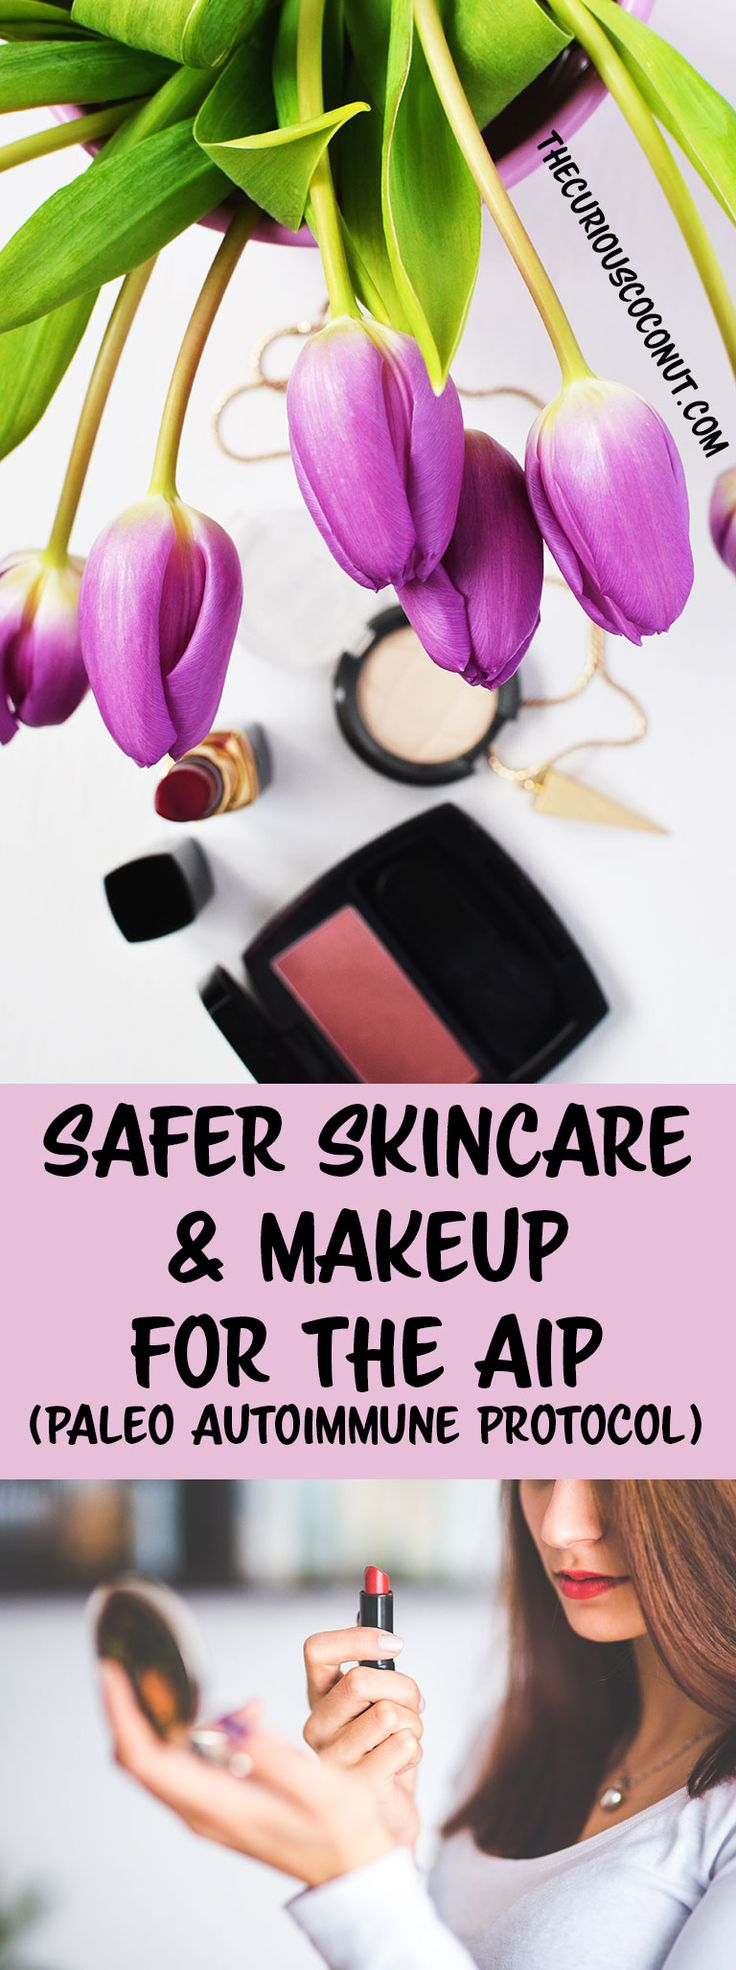 351 Best Natural Beauty Images On Pinterest African Black Soap Jill Lip Matte 07 Violet Daisy Safer Skincare And Makeup For The Aip